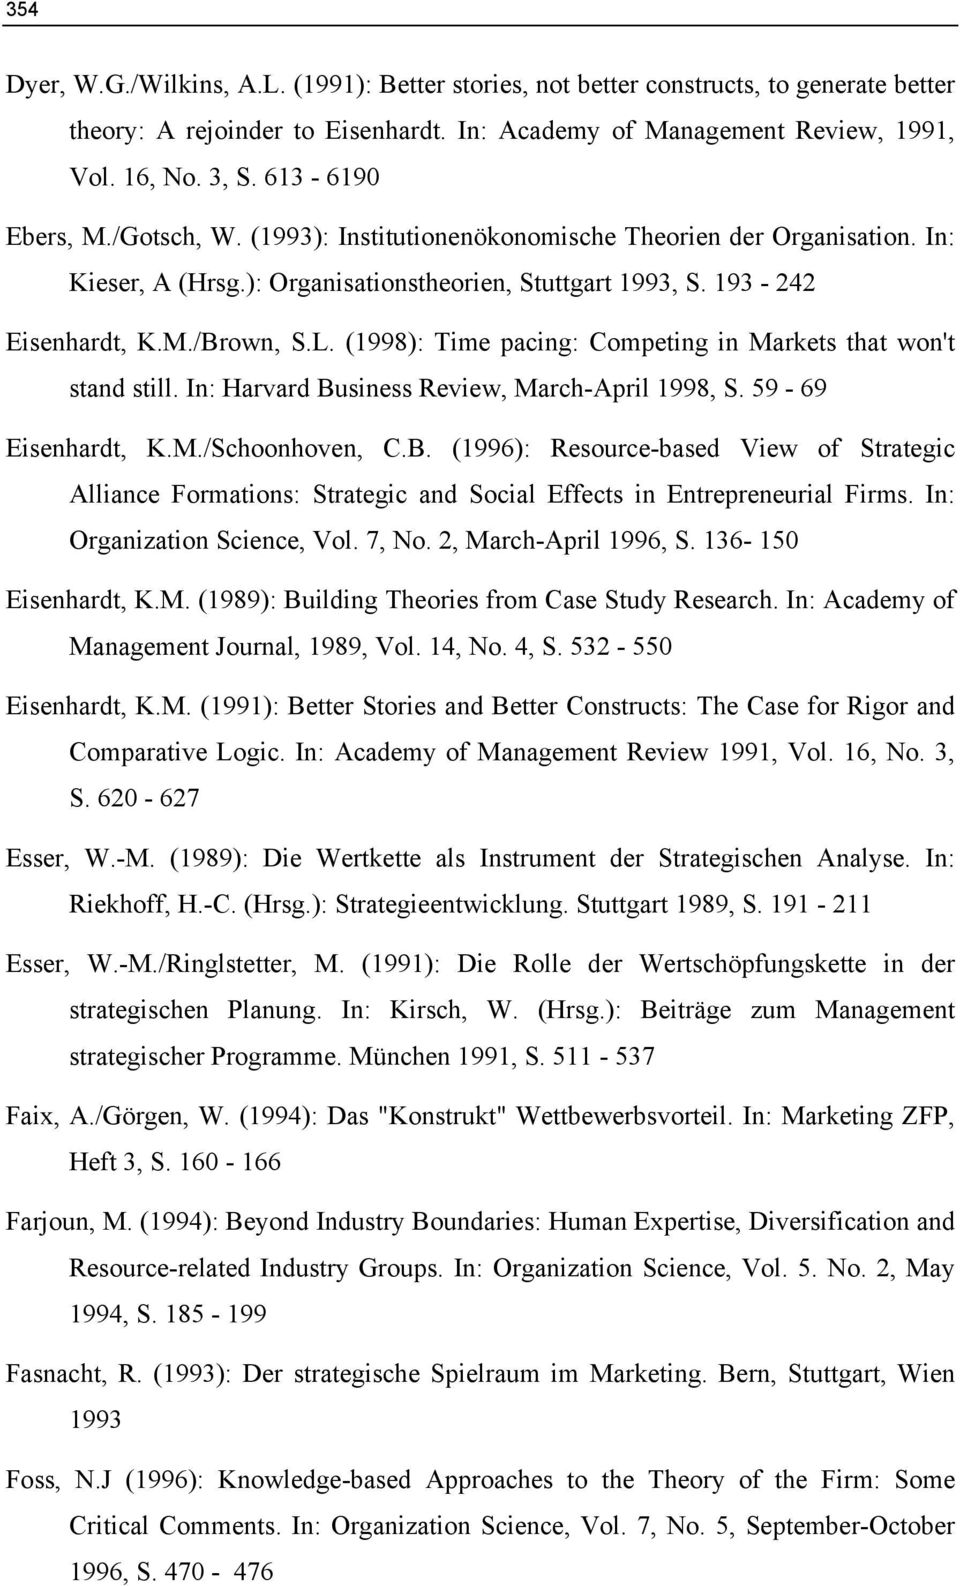 (1998): Time pacing: Competing in Markets that won't stand still. In: Harvard Business Review, March-April 1998, S. 59-69 Eisenhardt, K.M./Schoonhoven, C.B. (1996): Resource-based View of Strategic Alliance Formations: Strategic and Social Effects in Entrepreneurial Firms.